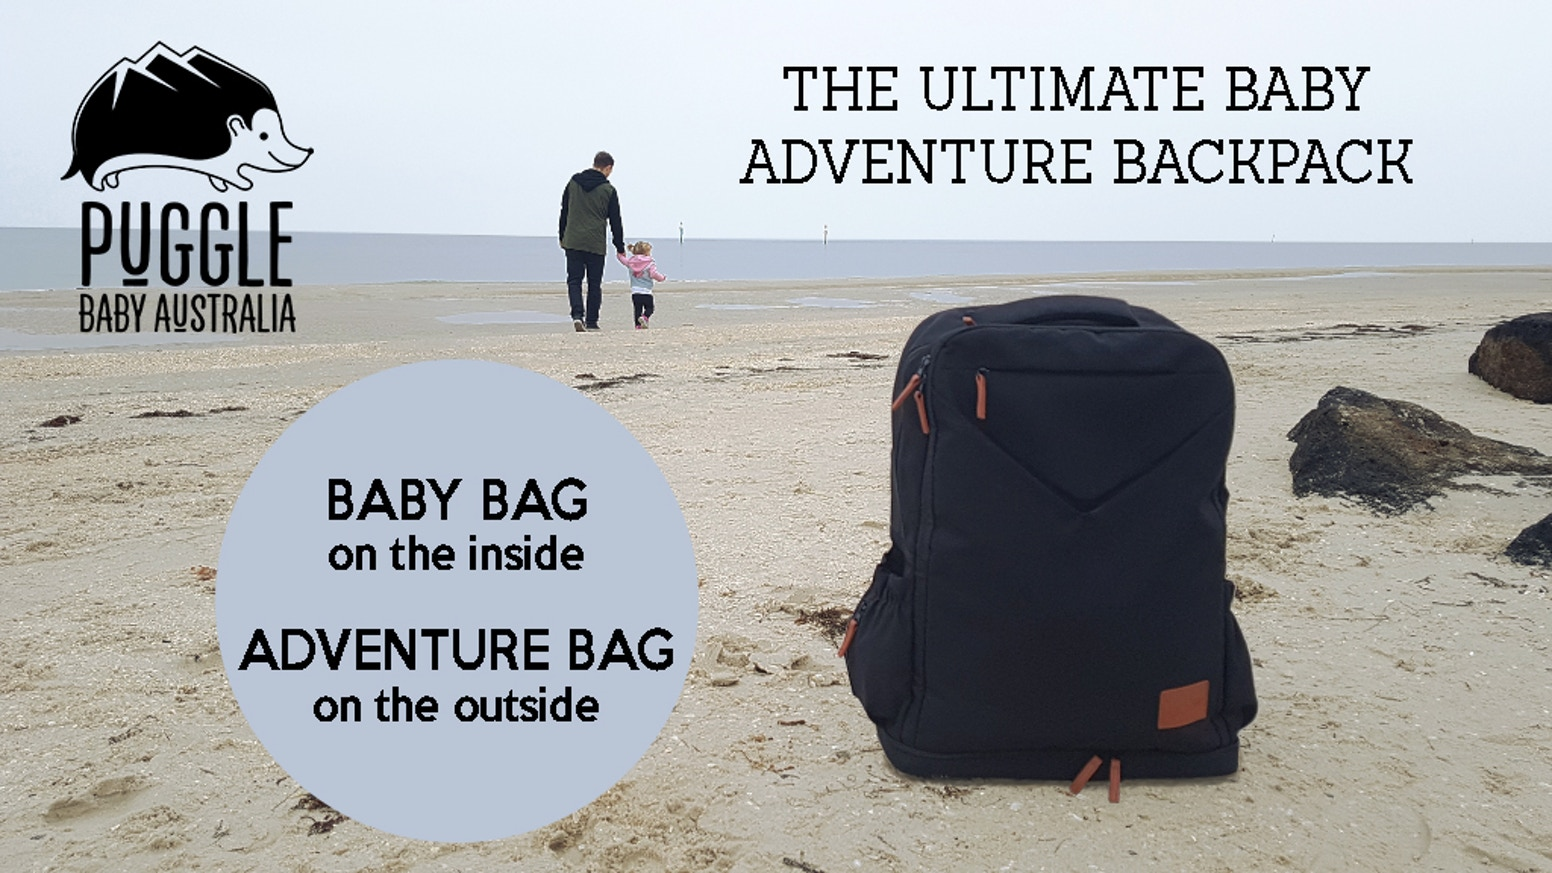 An Adventure Bag on the outside and a Baby Backpack on the inside.